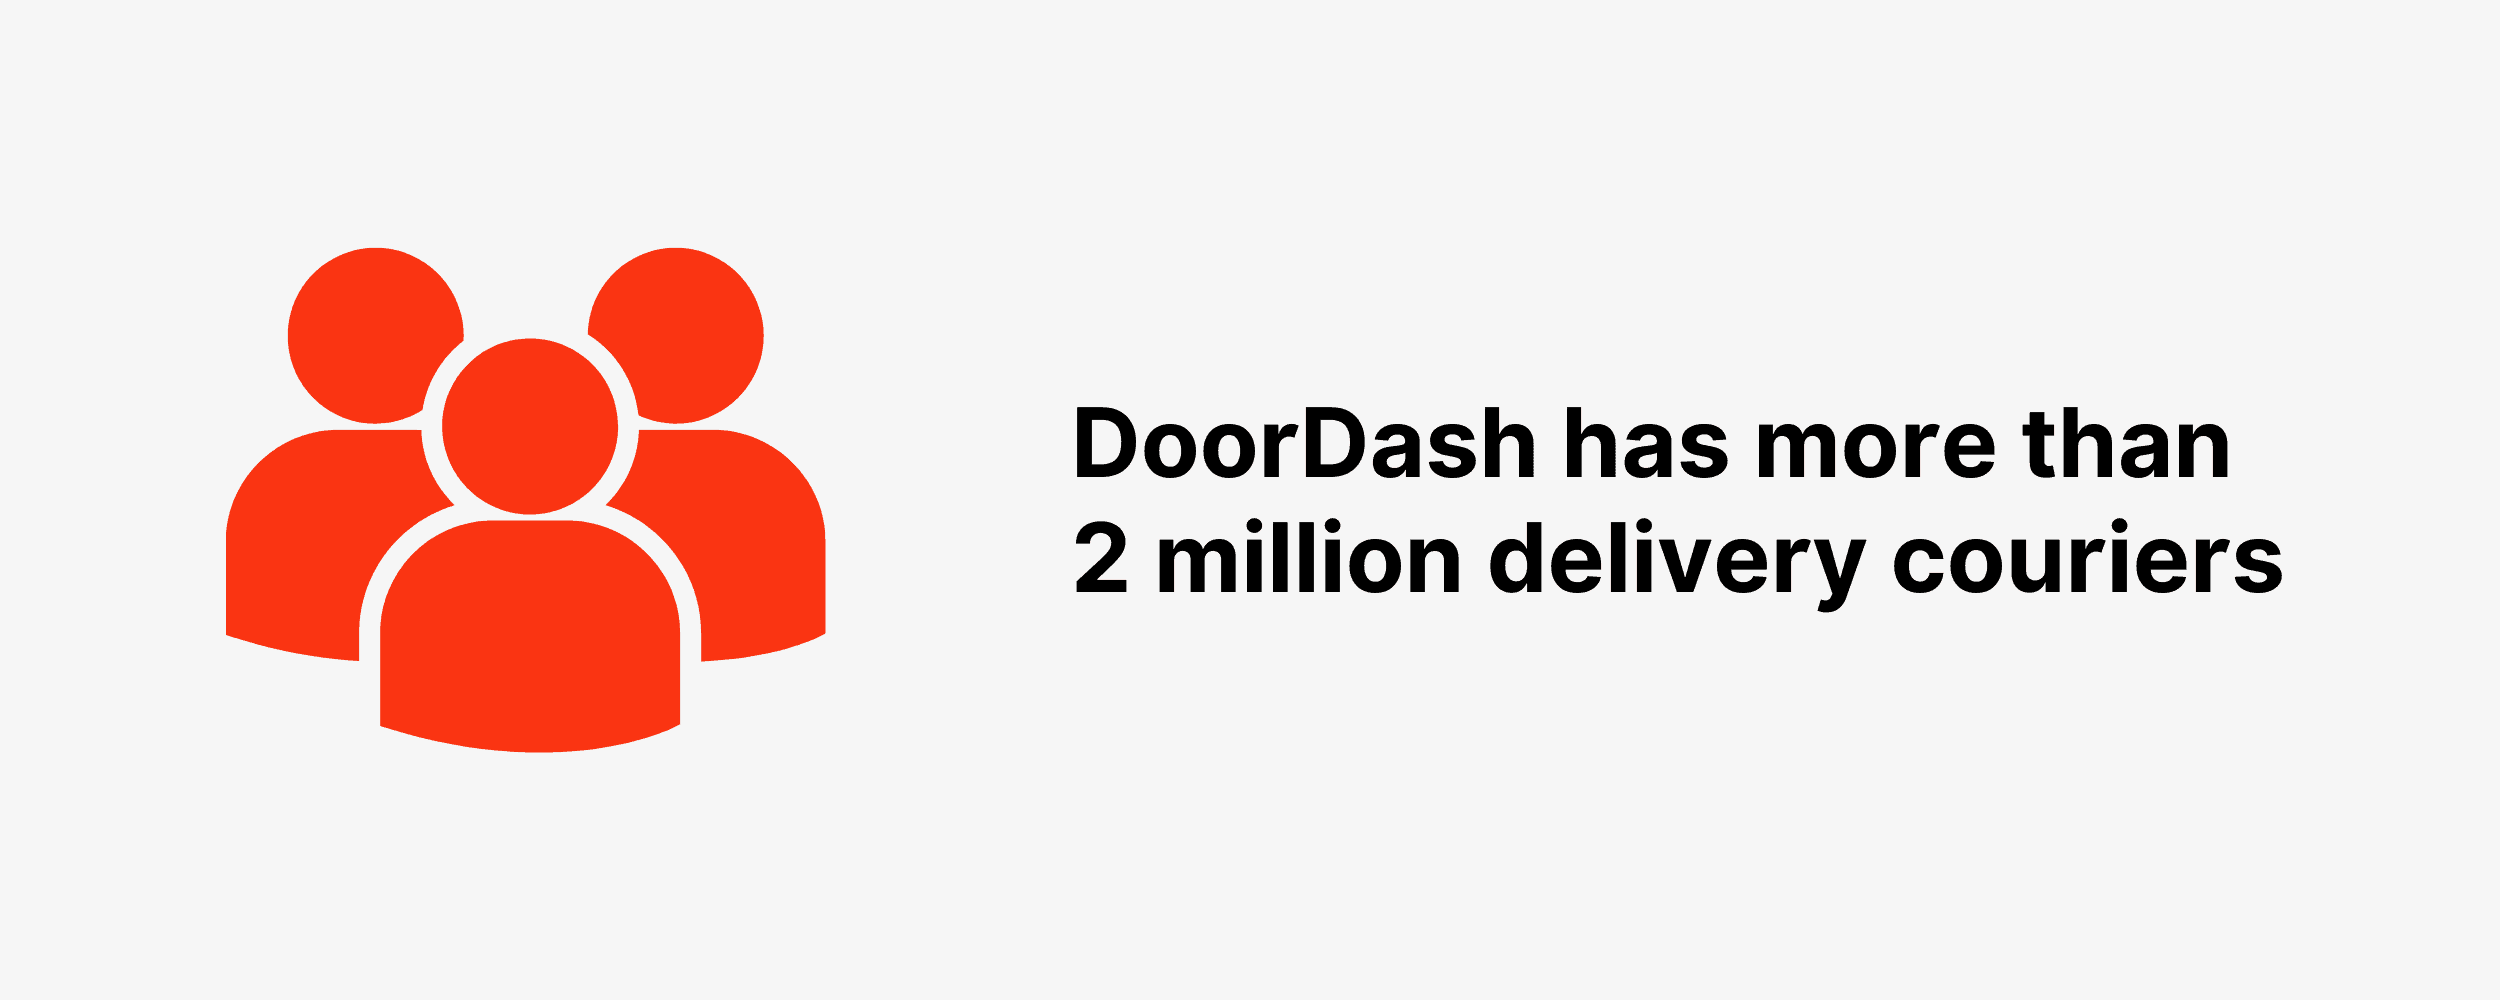 DoorDash has more than 2 million delivery couriers